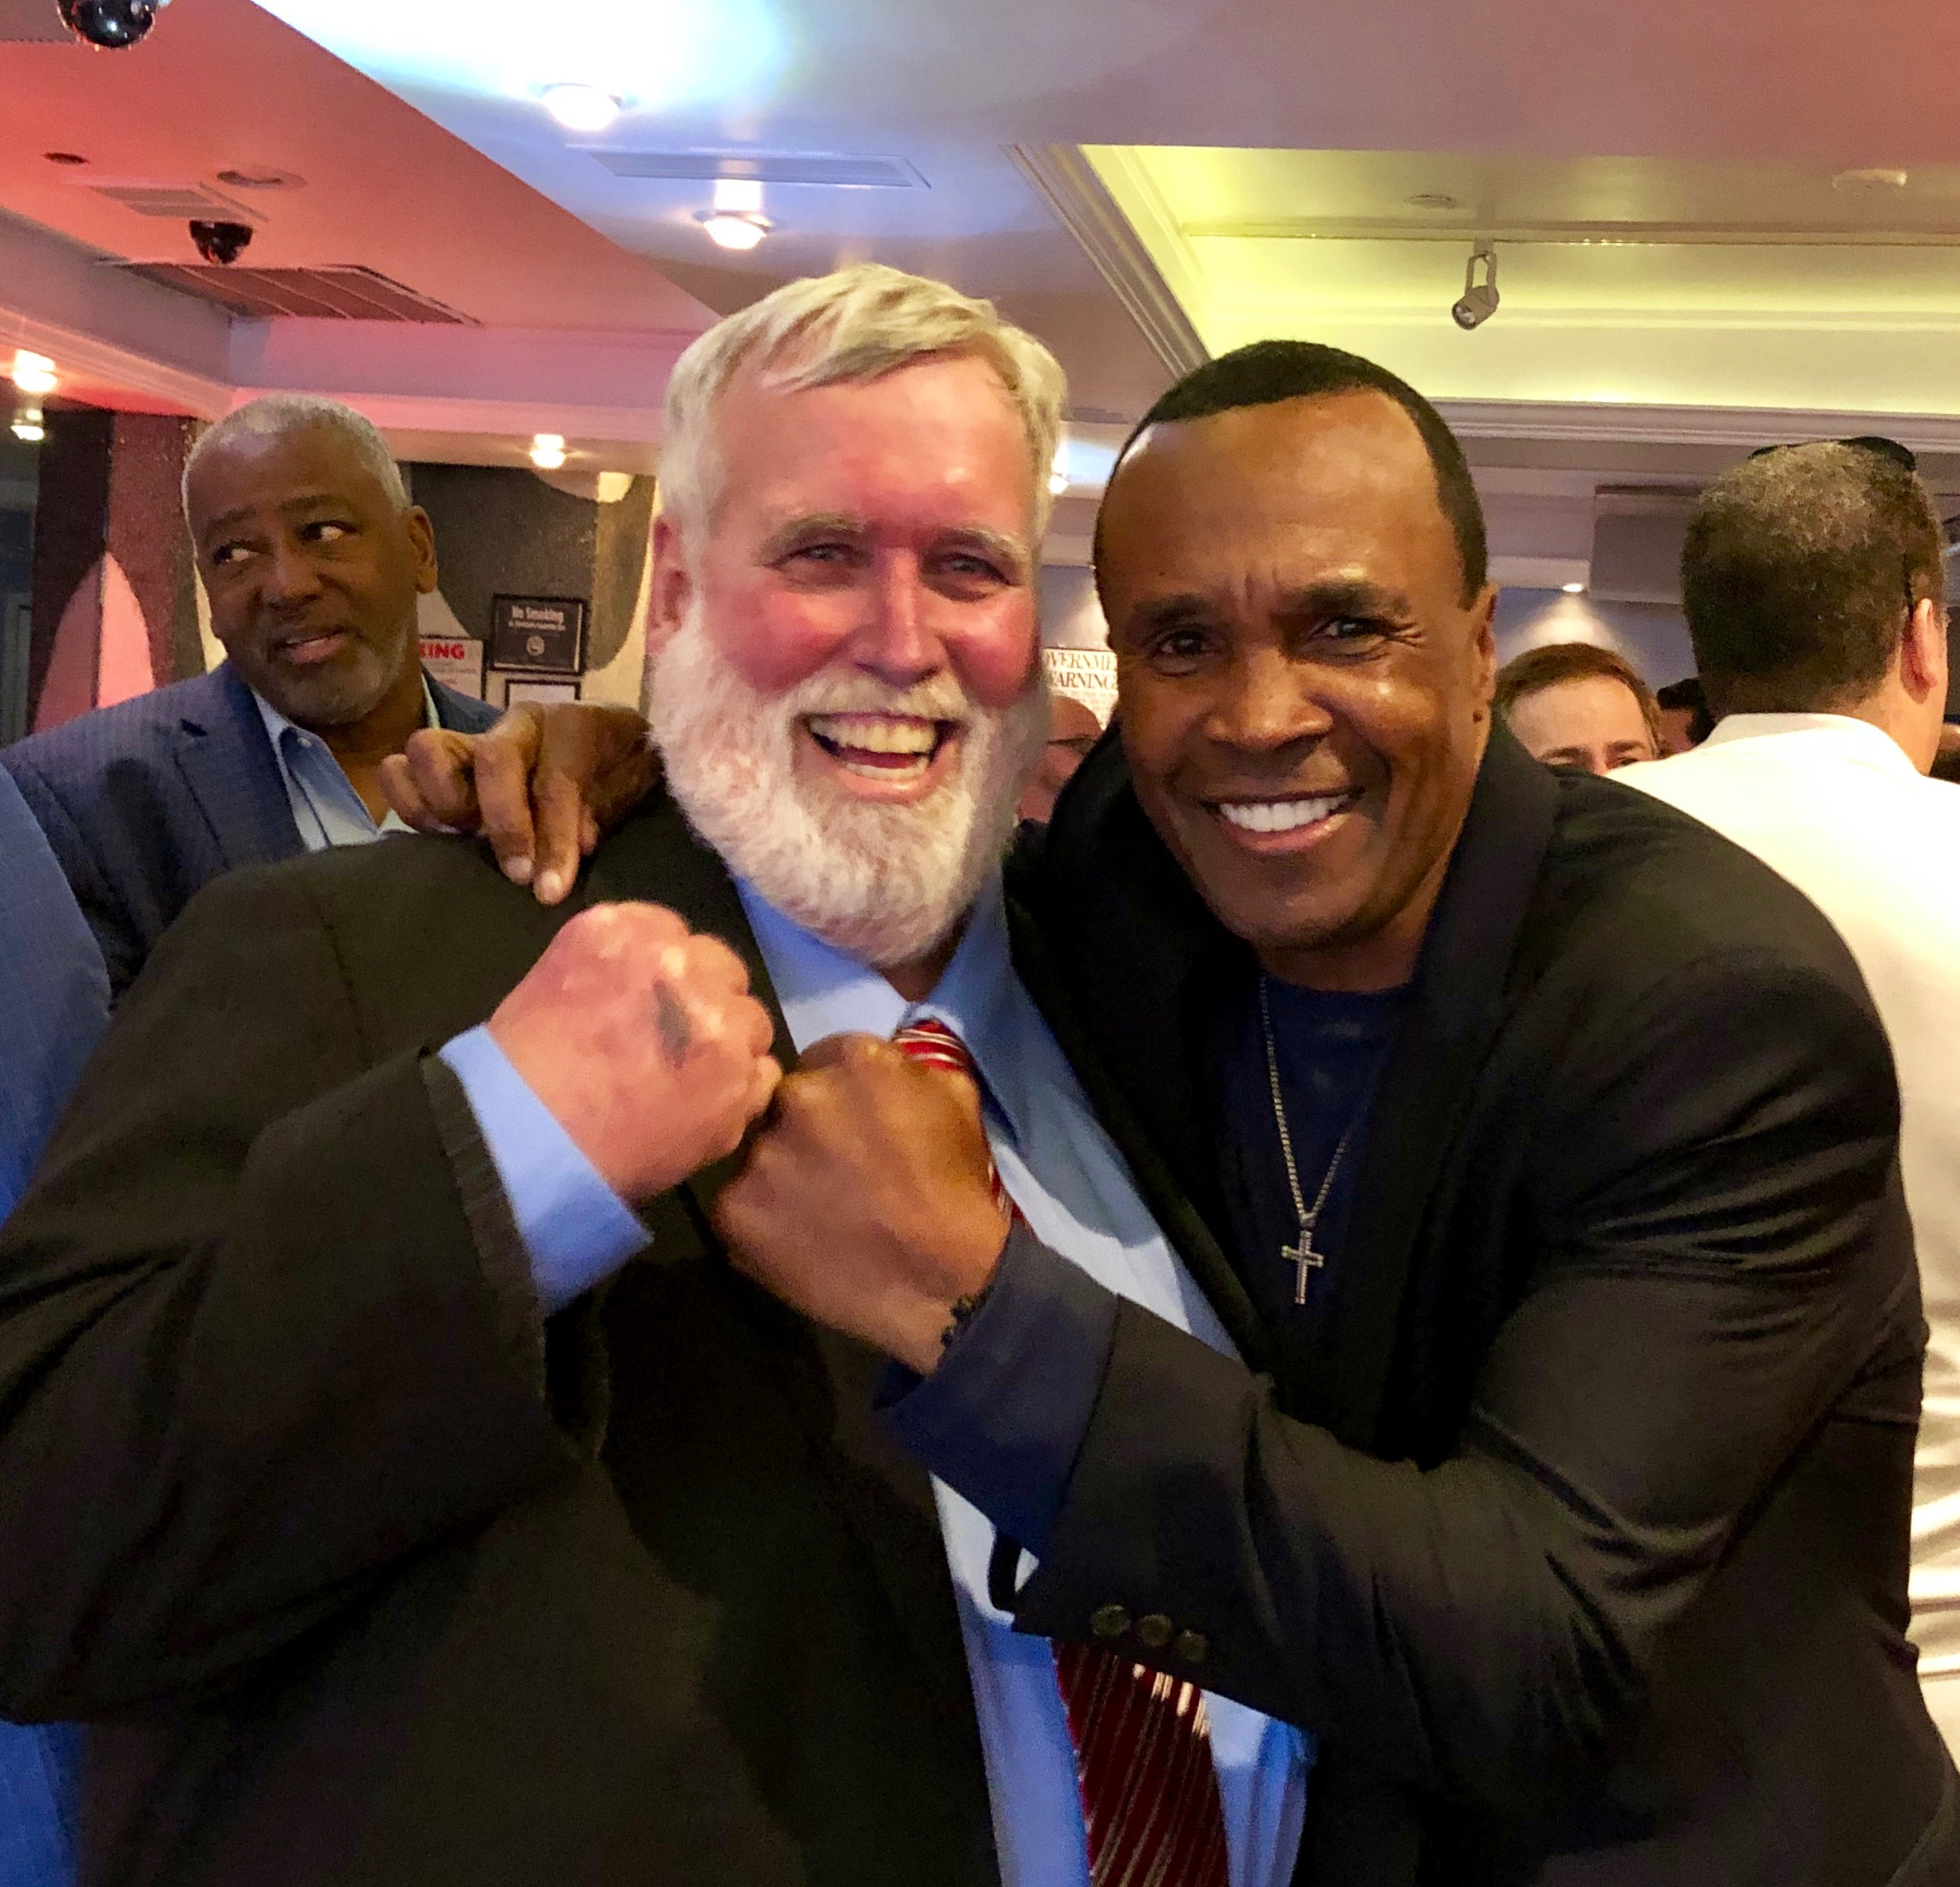 Thom with Sugar Ray Leonard